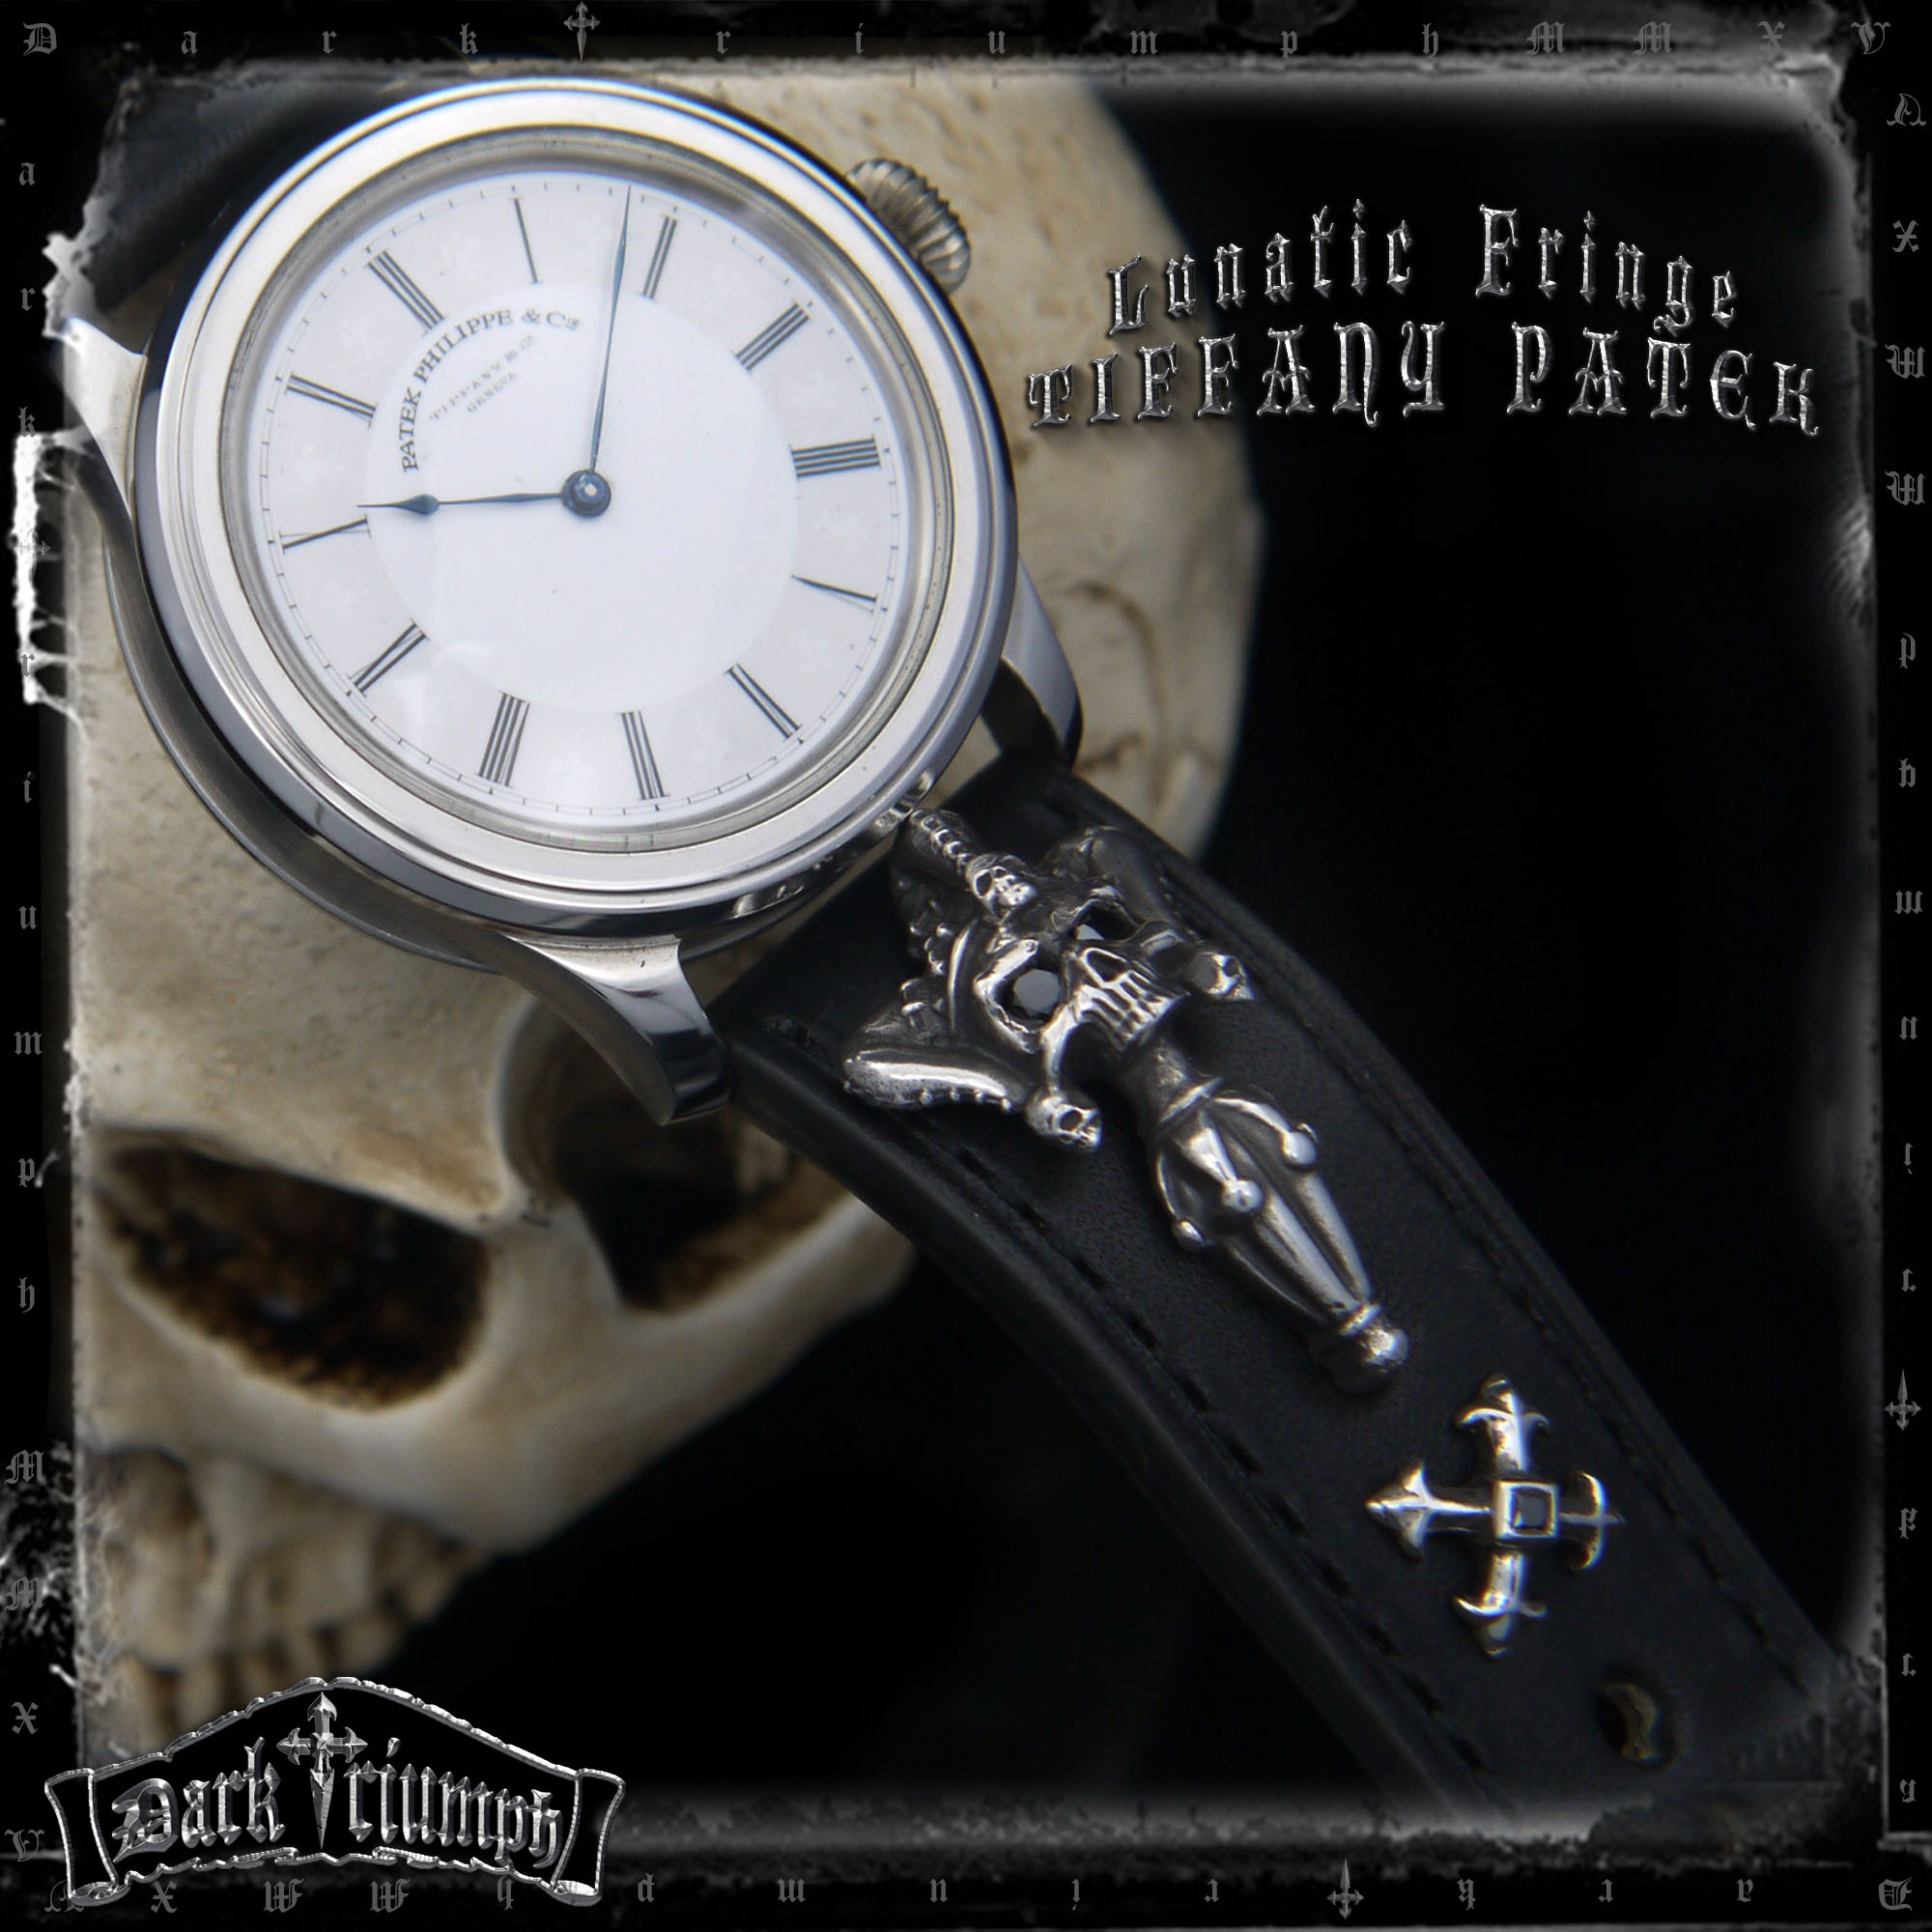 leather-lunatic-fringe-patek-titled.jpg